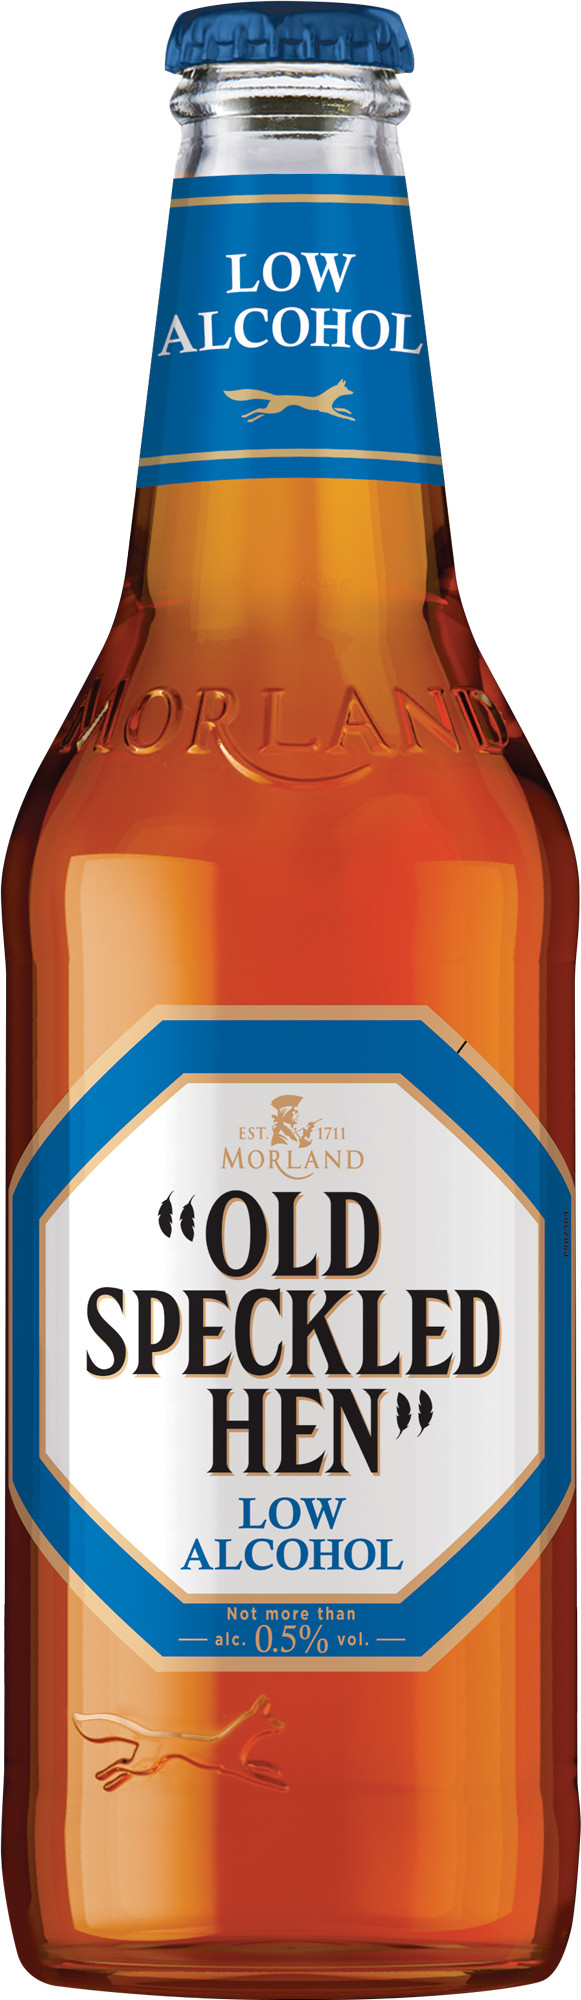 a40267003cc Old Speckled Hen Low Alcohol is available in Tesco at £1.30 a bottle.